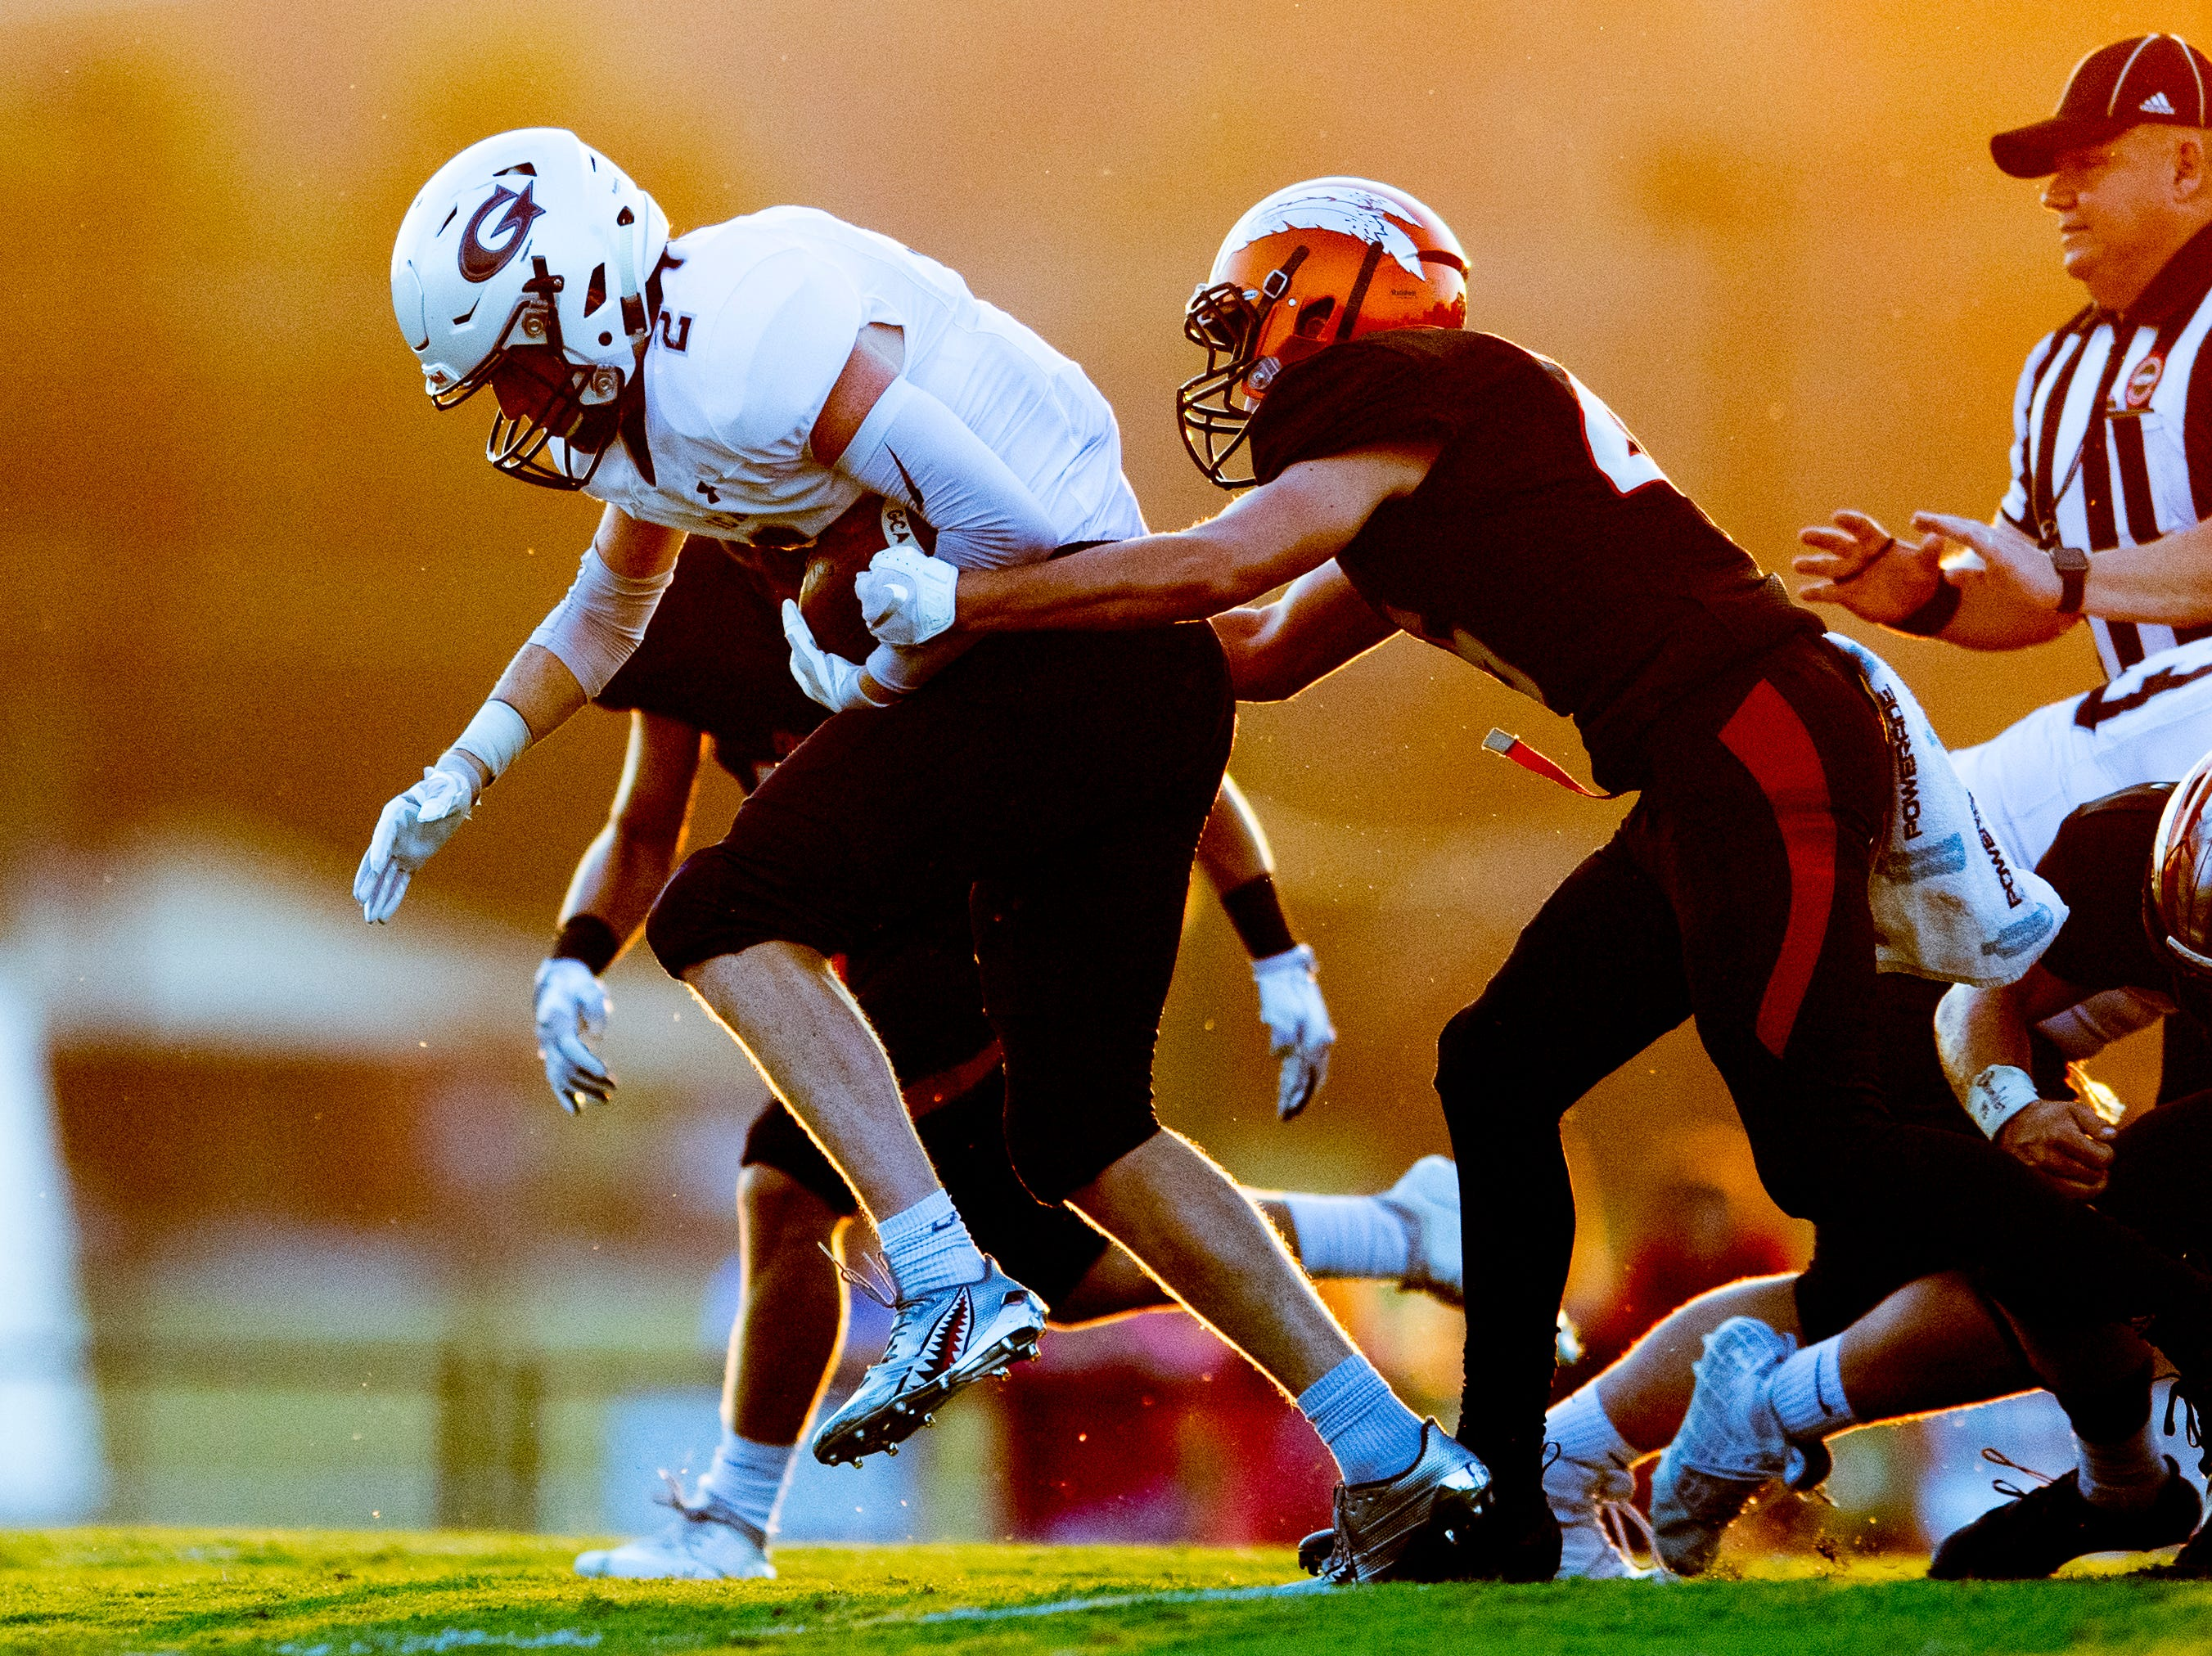 Grace Christian's Chandler Williams (2) tries to break away from Greenback's Blake Morton (26)  during a football game between Greenback and Grace Christian at Greenback High School in Greenback, Tennessee on Thursday, September 20, 2018.